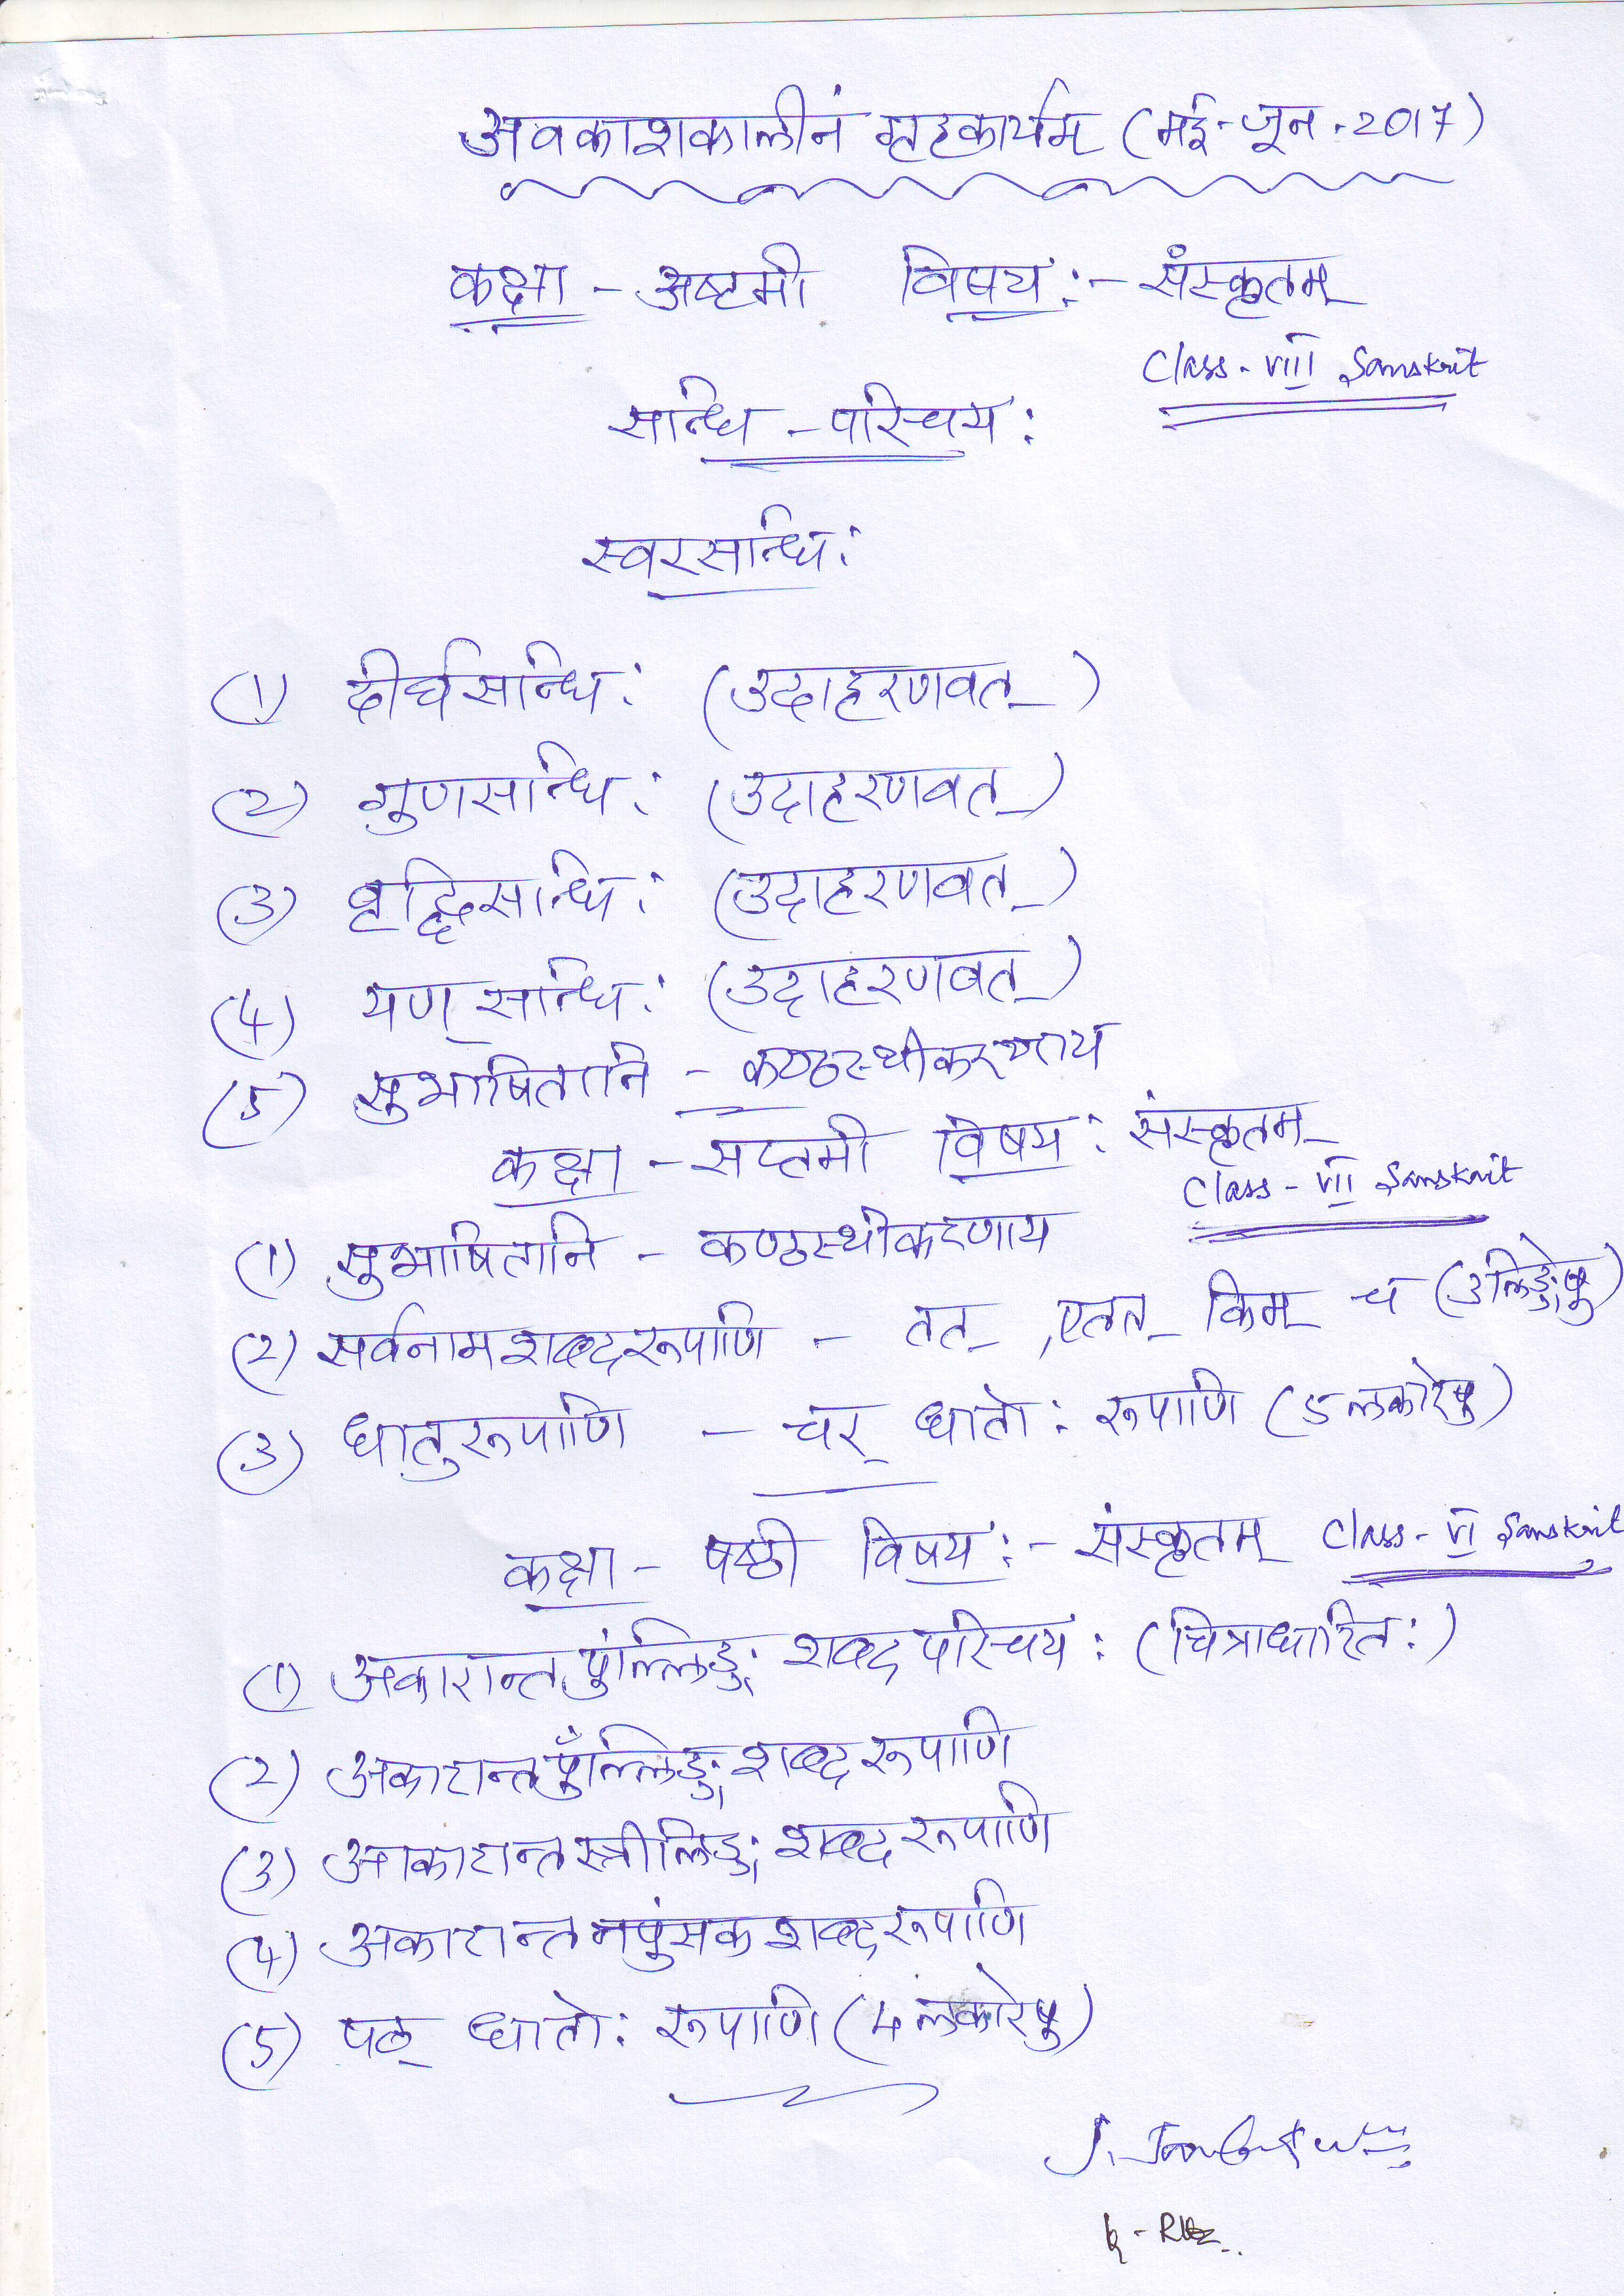 cl-6-to-8-sanskrit-holiday-hw Vacation Application Format on application error, application structure, application rubric, application for wife joke, application data, application access, application not supported, application date, application required, application creator, application role, application folder, application control, application availability, application code, application paper, application scoring, application status, application running slow, application model,